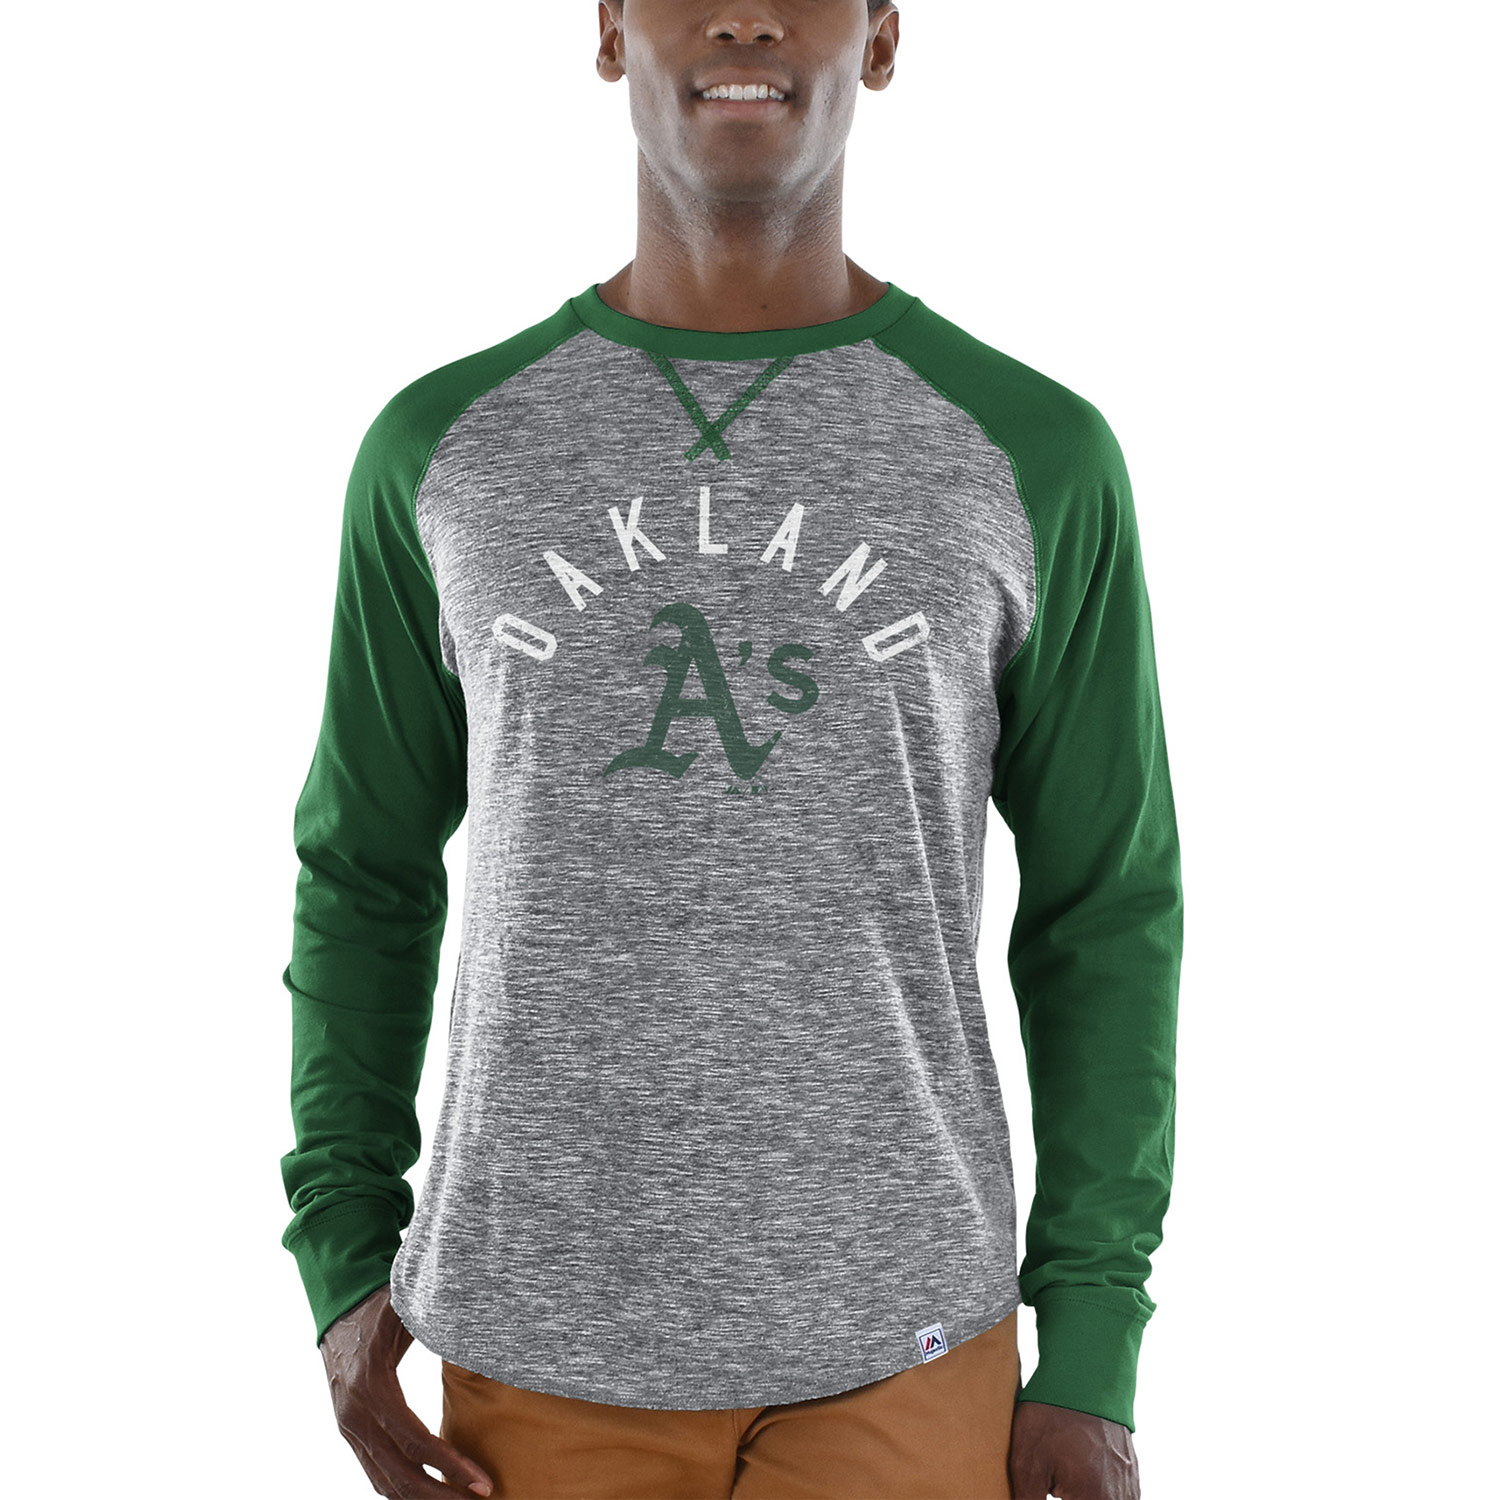 Oakland Athletics Majestic Special Move Long Sleeve T-Shirt - Gray/Green